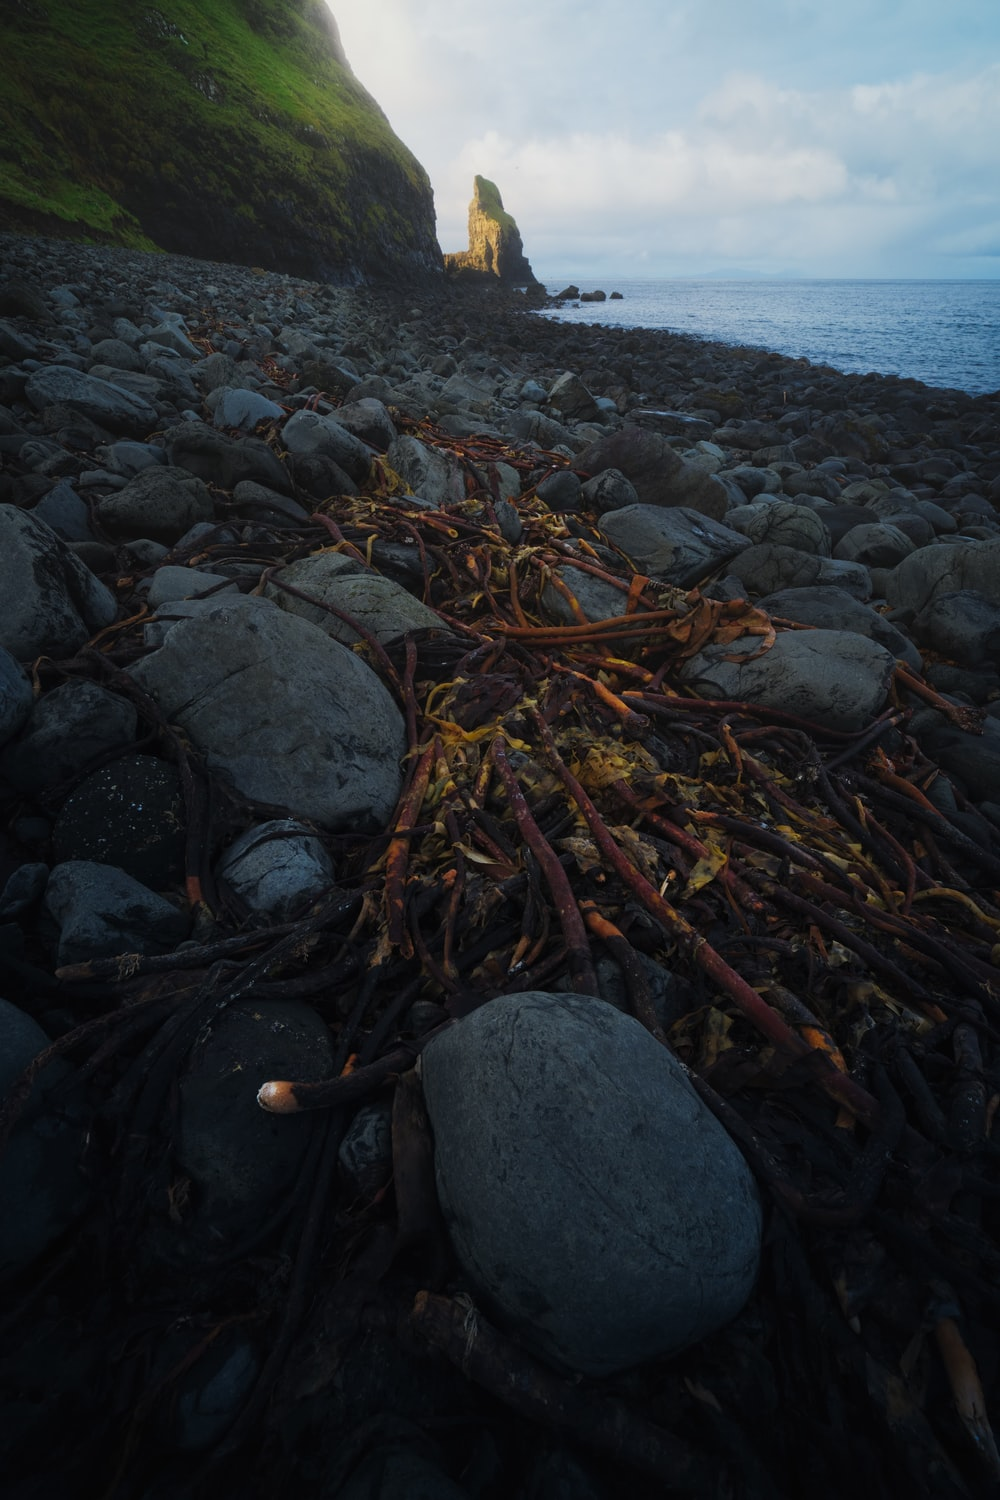 brown dried fish on black rocks near body of water during daytime